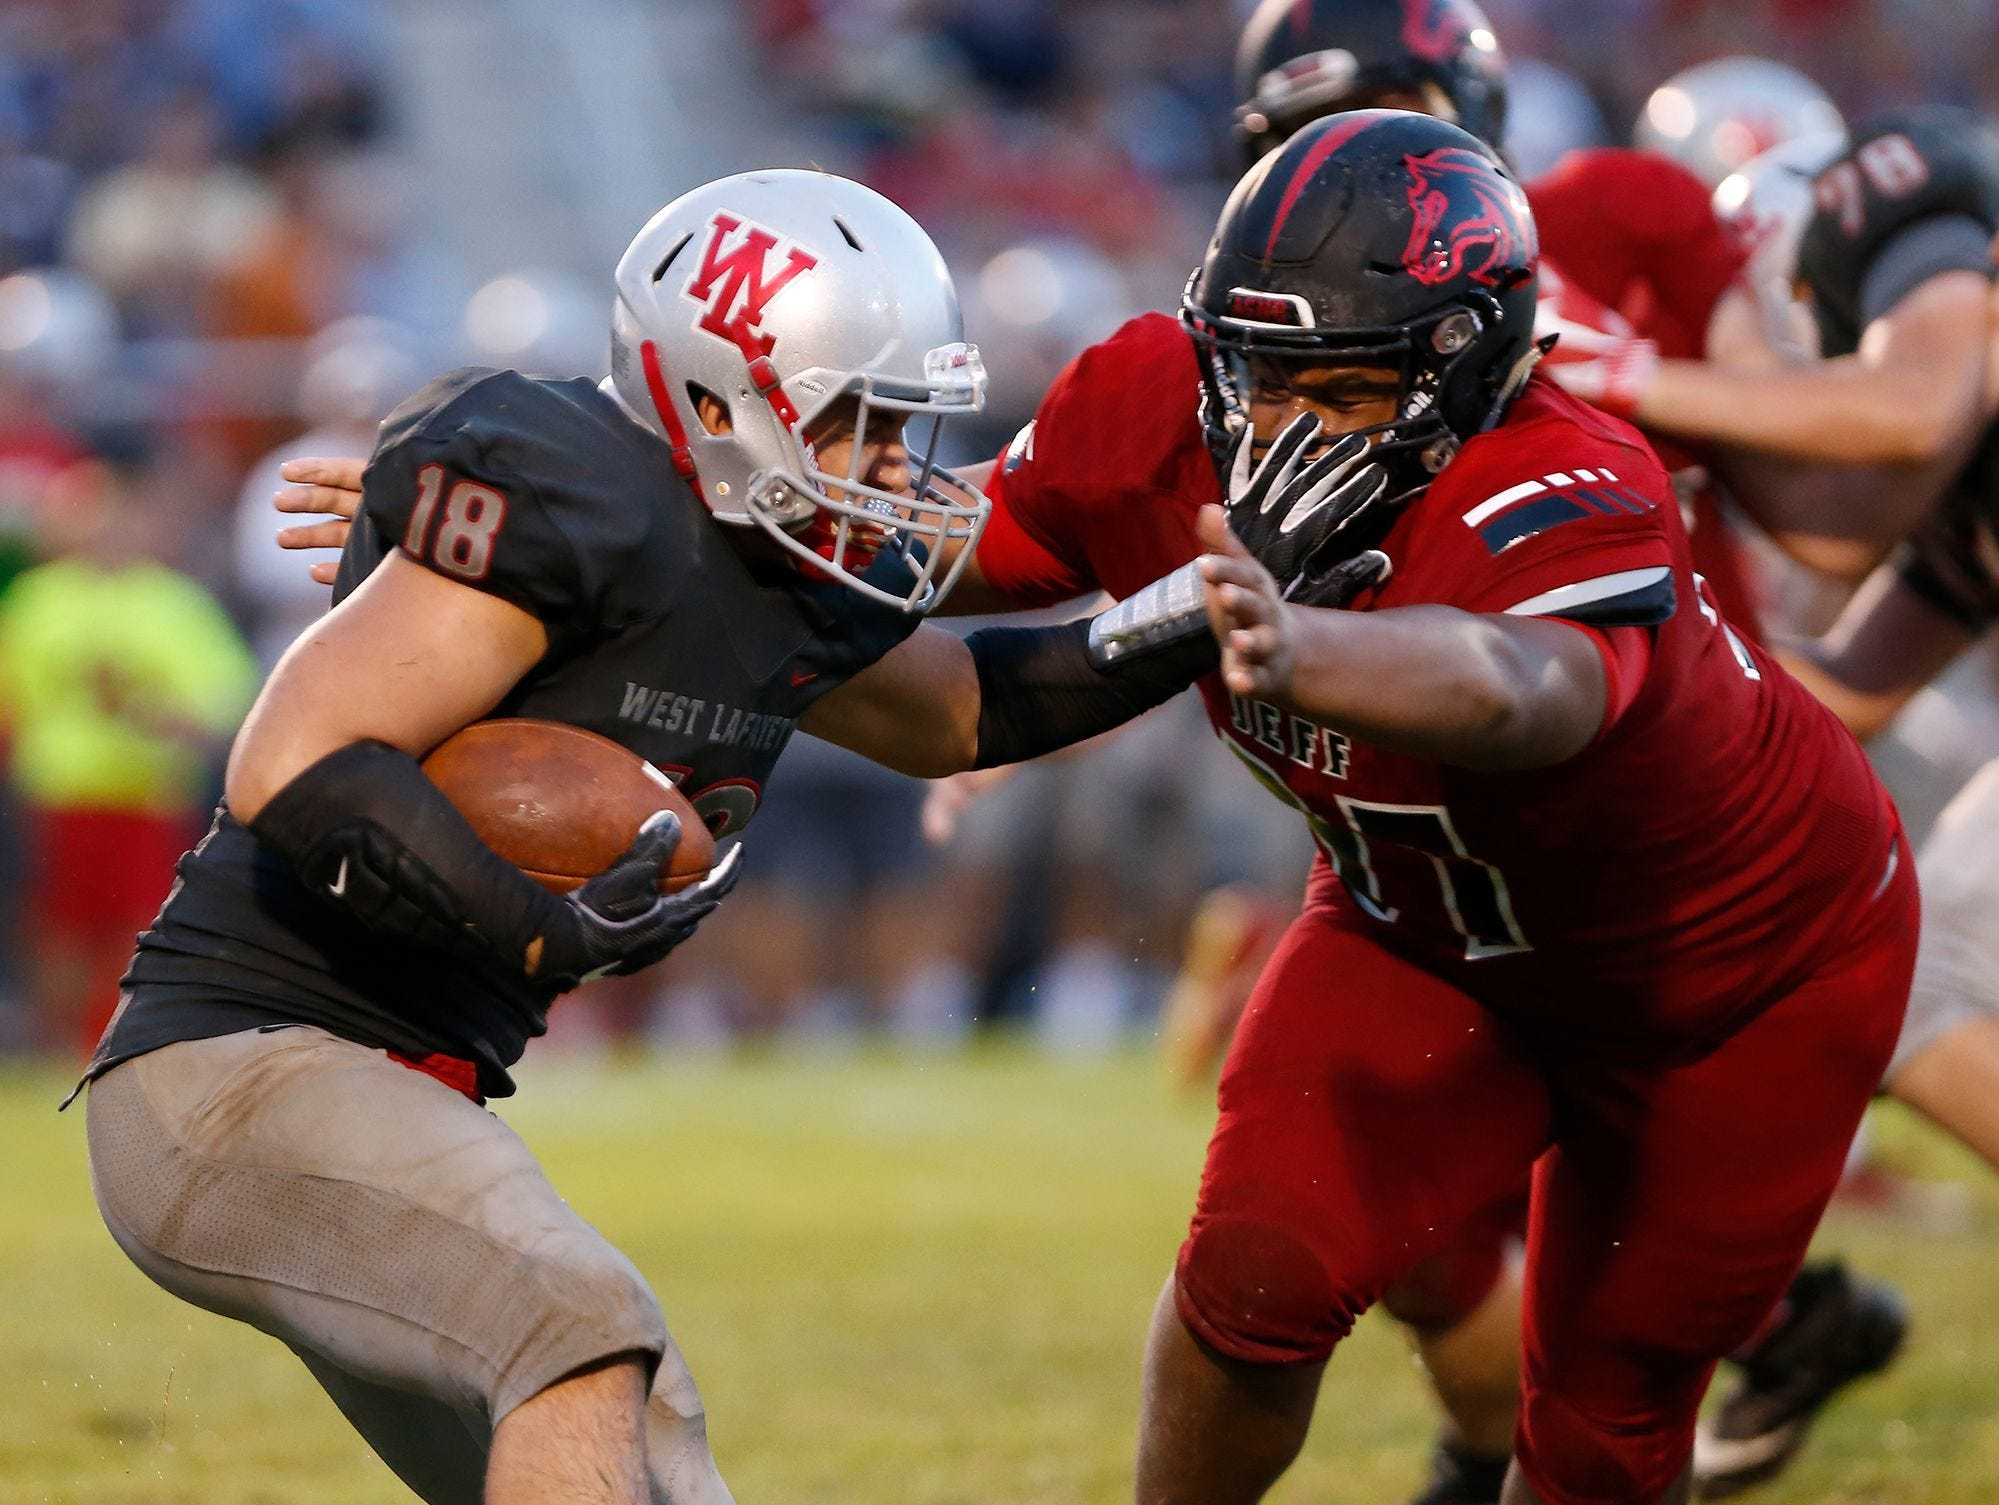 Sage Hood of West Lafayette is wrapped up by Peyton Price of Lafayette Jeff on Friday at Gordon Straley Field in West Lafayette. West Lafayette defeated Jeff 38-29.